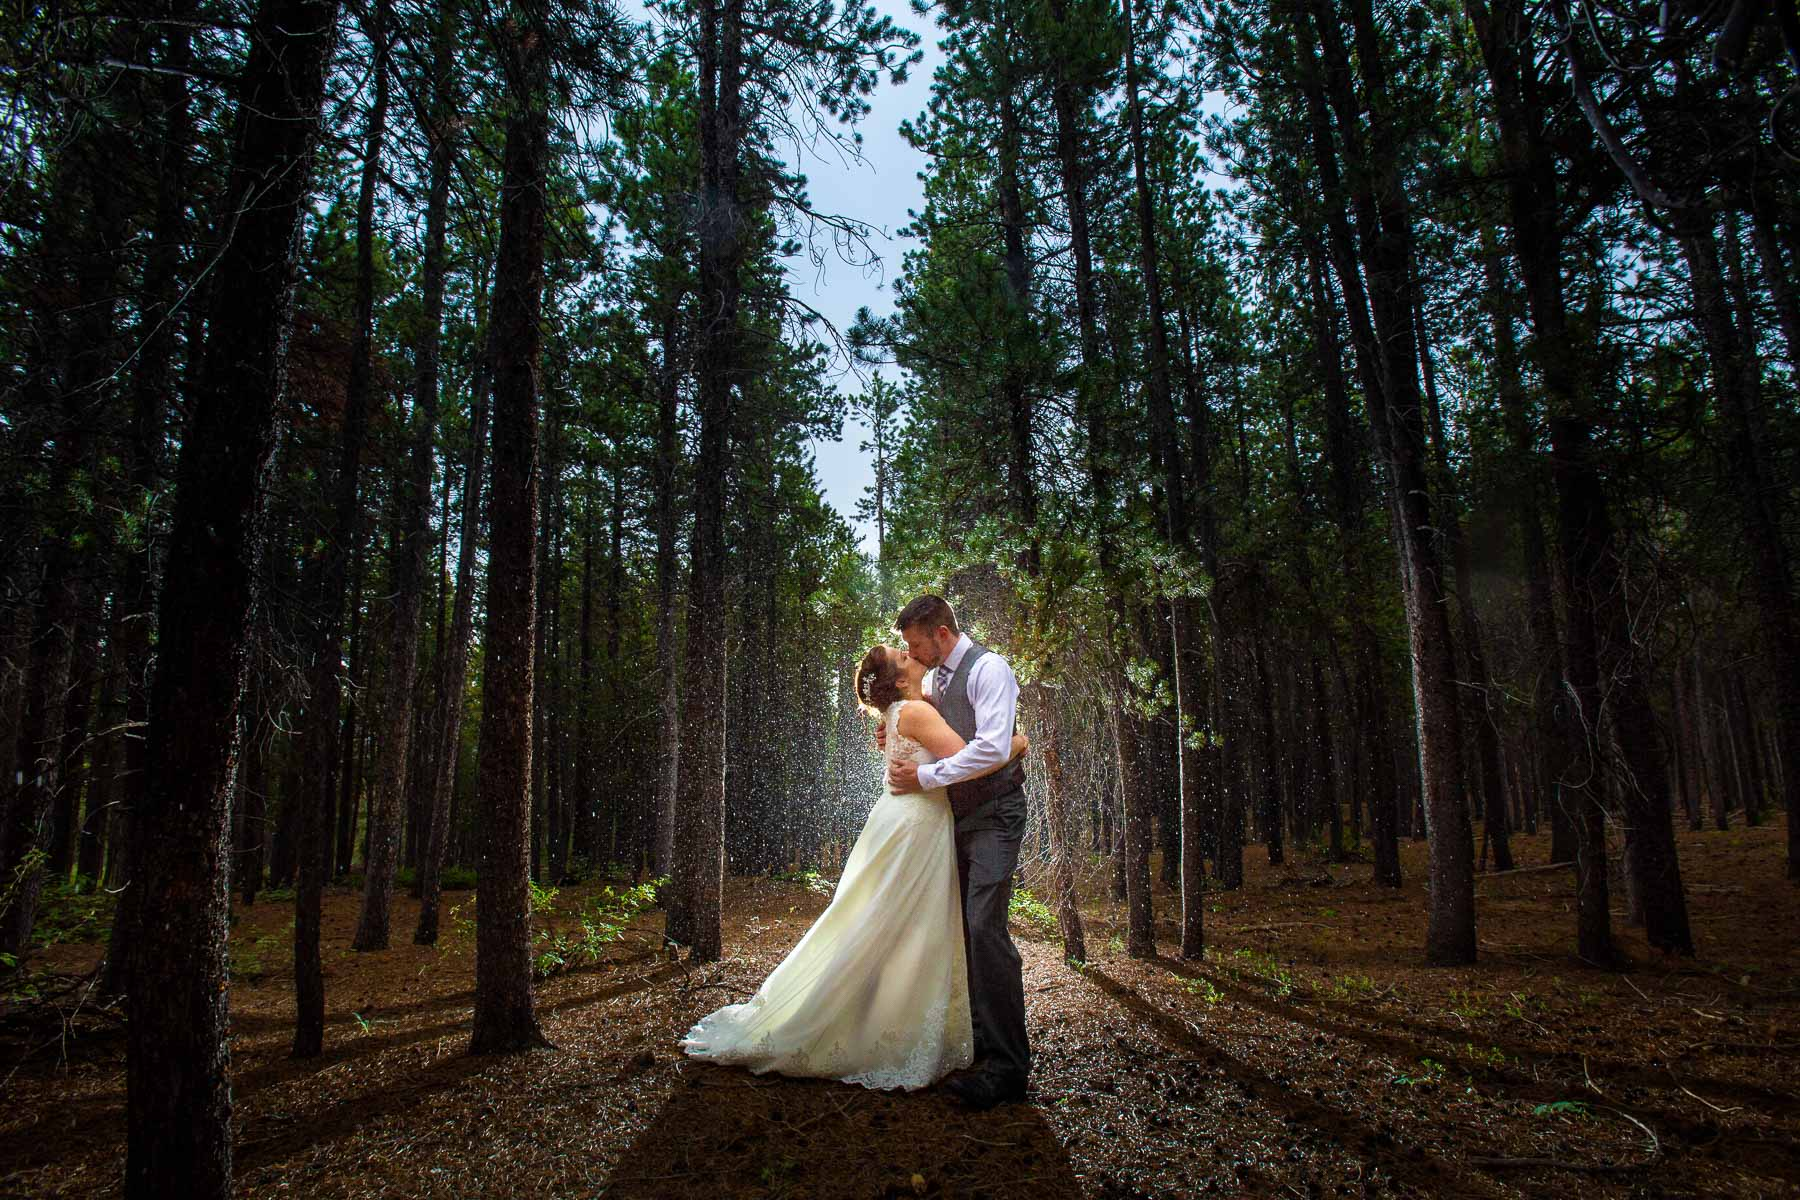 Colorado Elopement Wedding Couple Portrait   It began to rain so we headed for the shade of the woods - but truly this didn't help at all as the tall pines didn't provide as much cover as we'd hoped